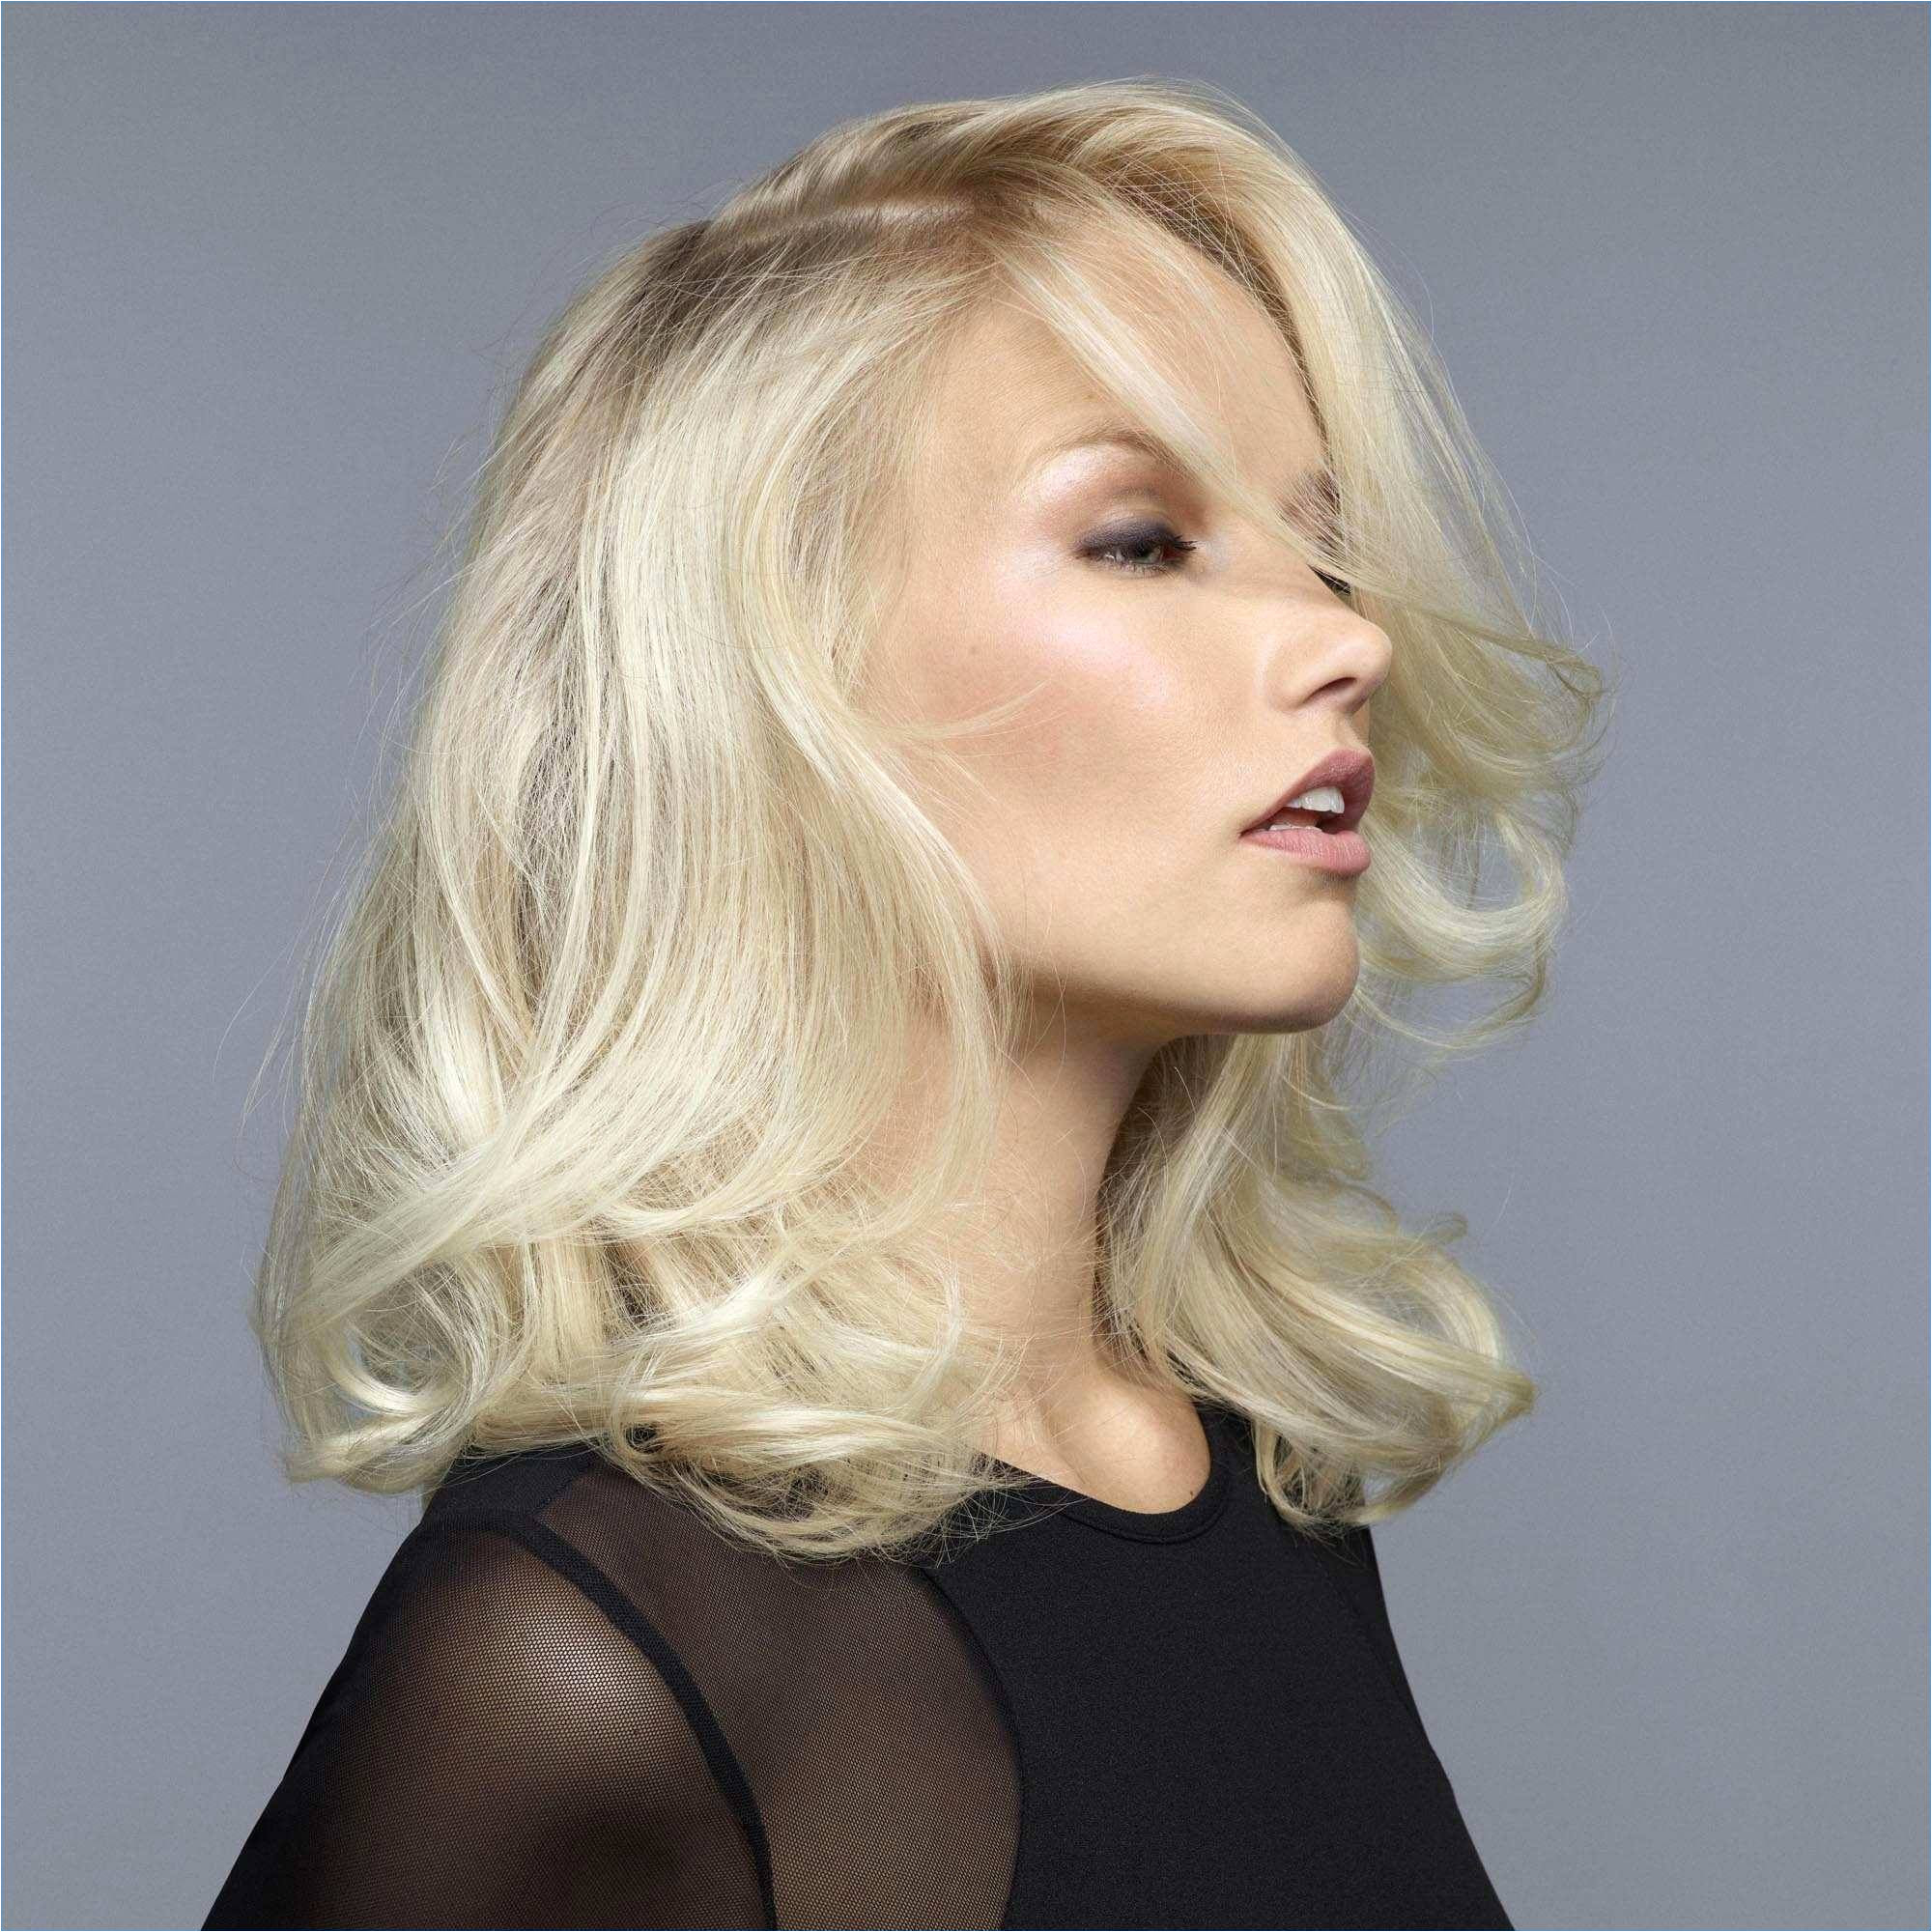 Good Looking Hairstyles for Girls Awesome Extraordinary Hairstyles for Men Luxury Haircuts 0d Excellent Luxury